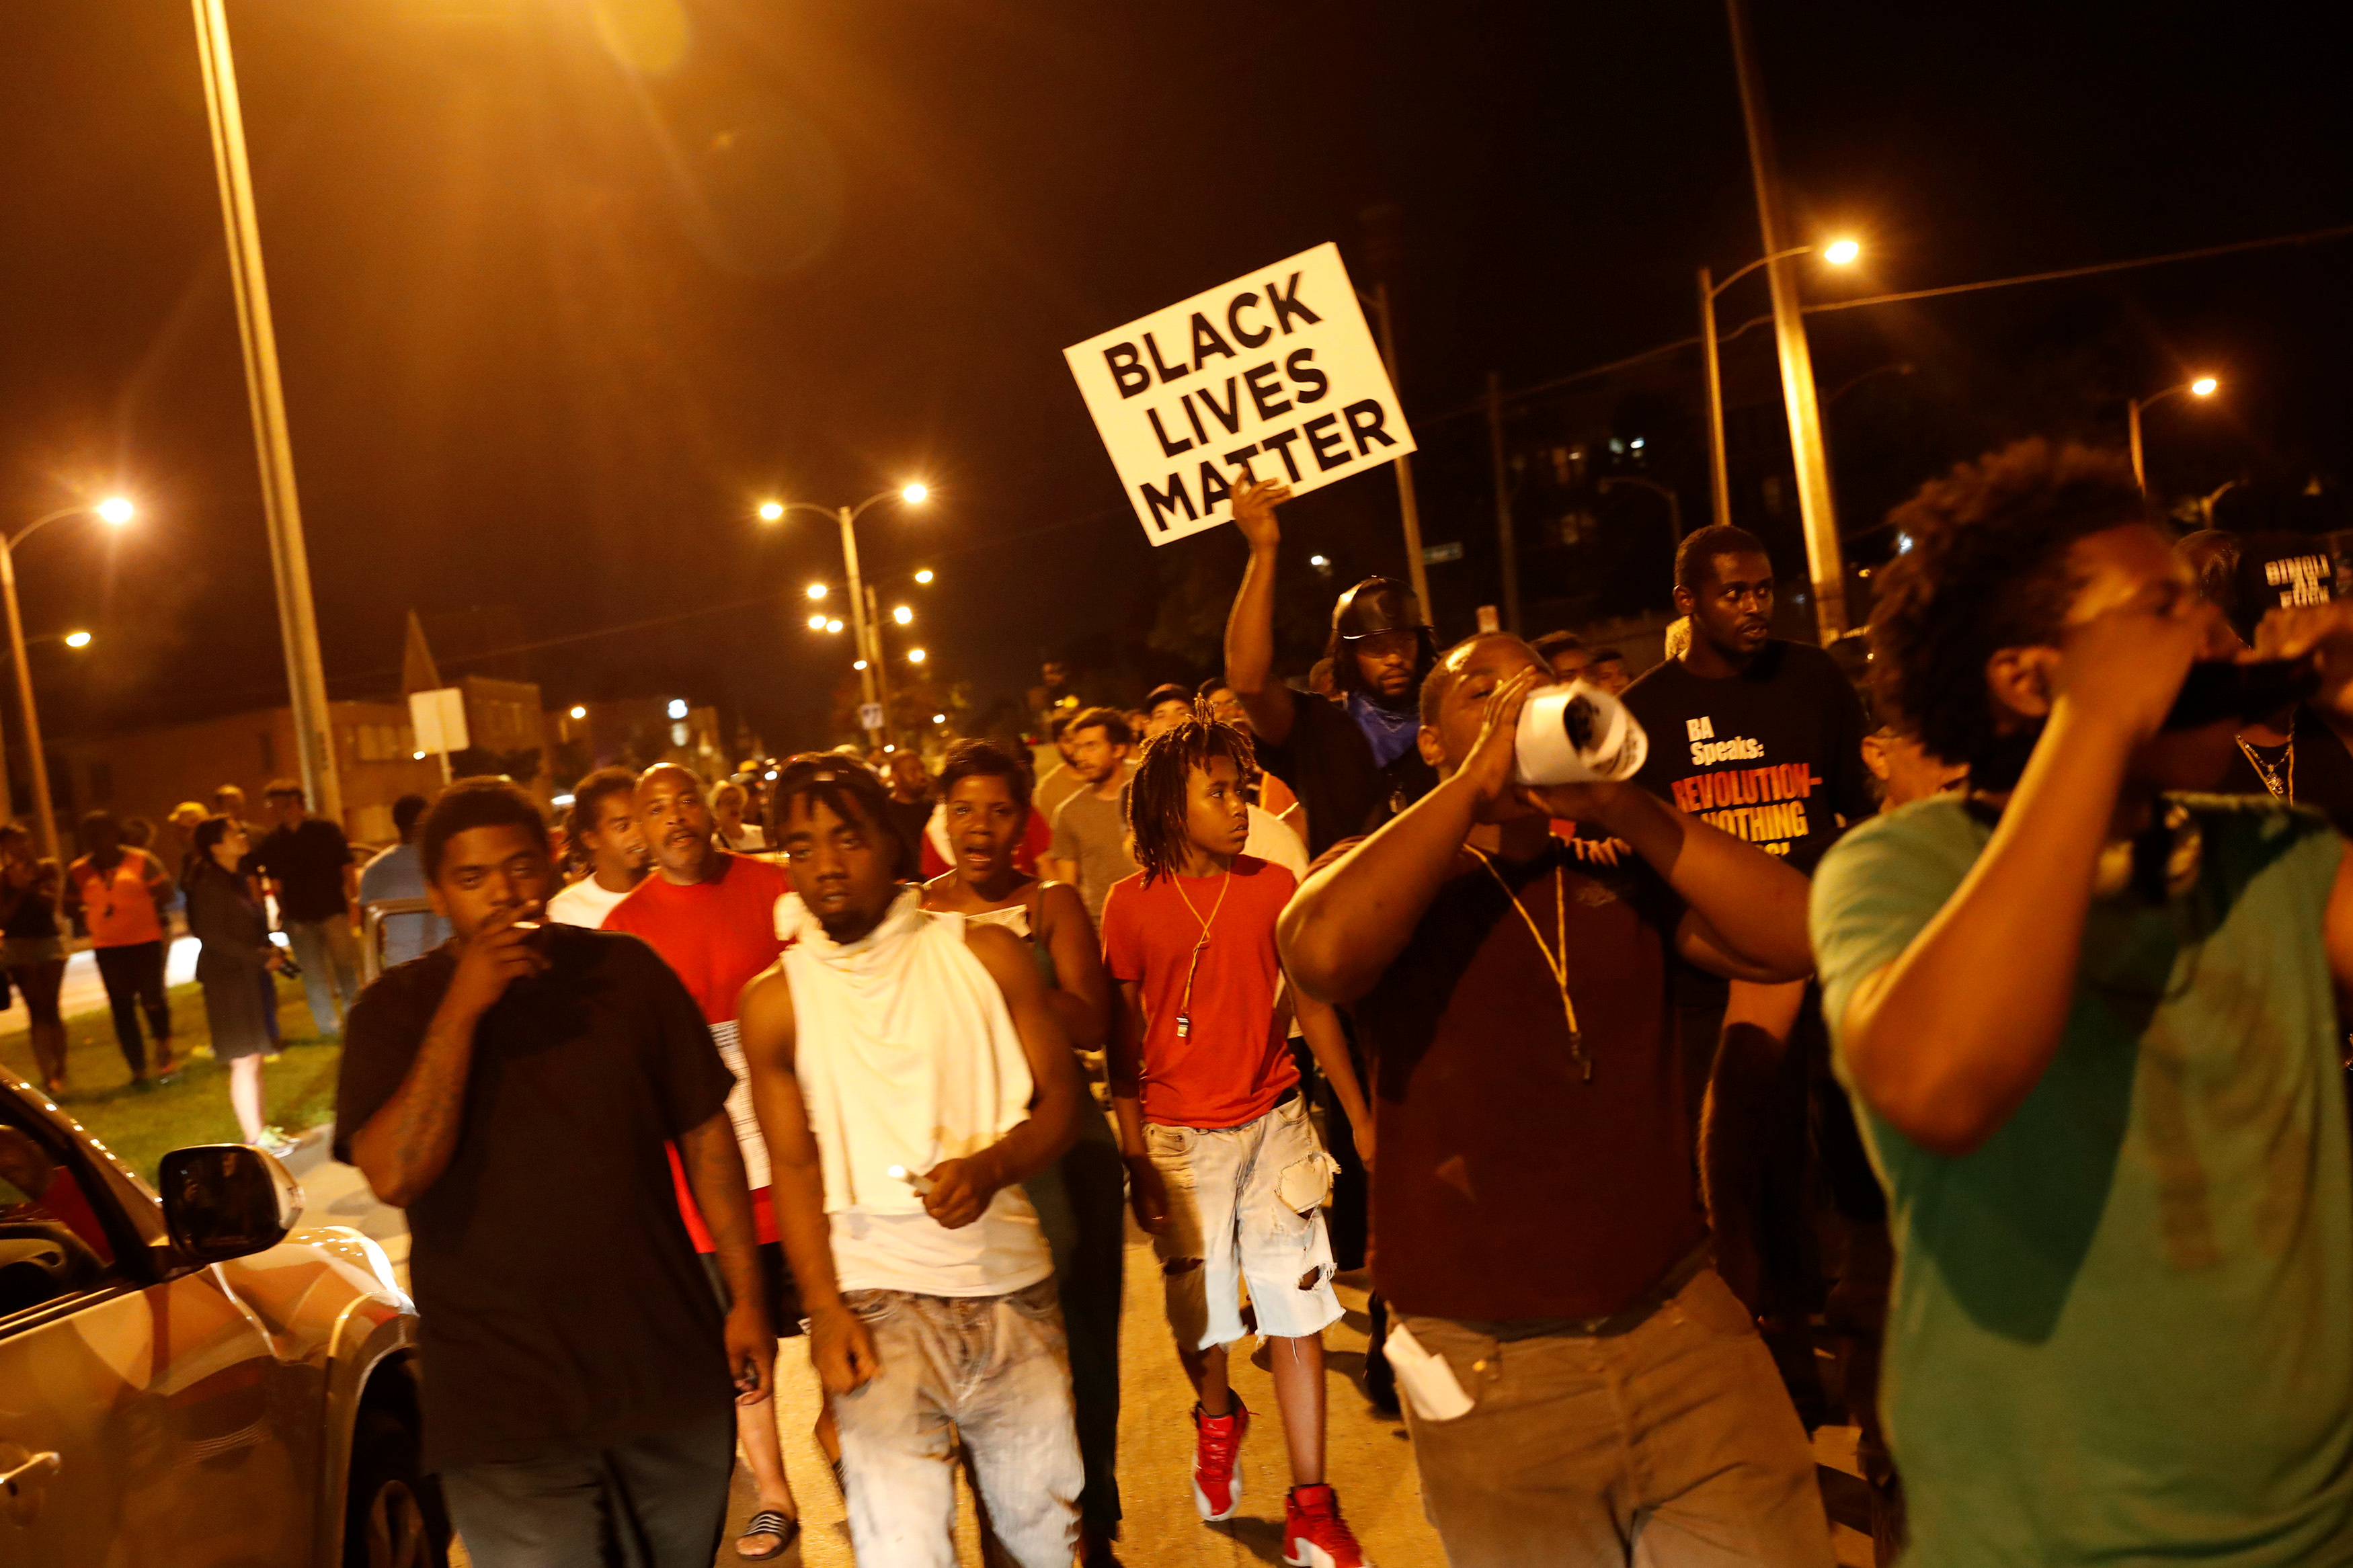 Protestors march during disturbances following the police shooting of a man in Milwaukee, Wisconsin